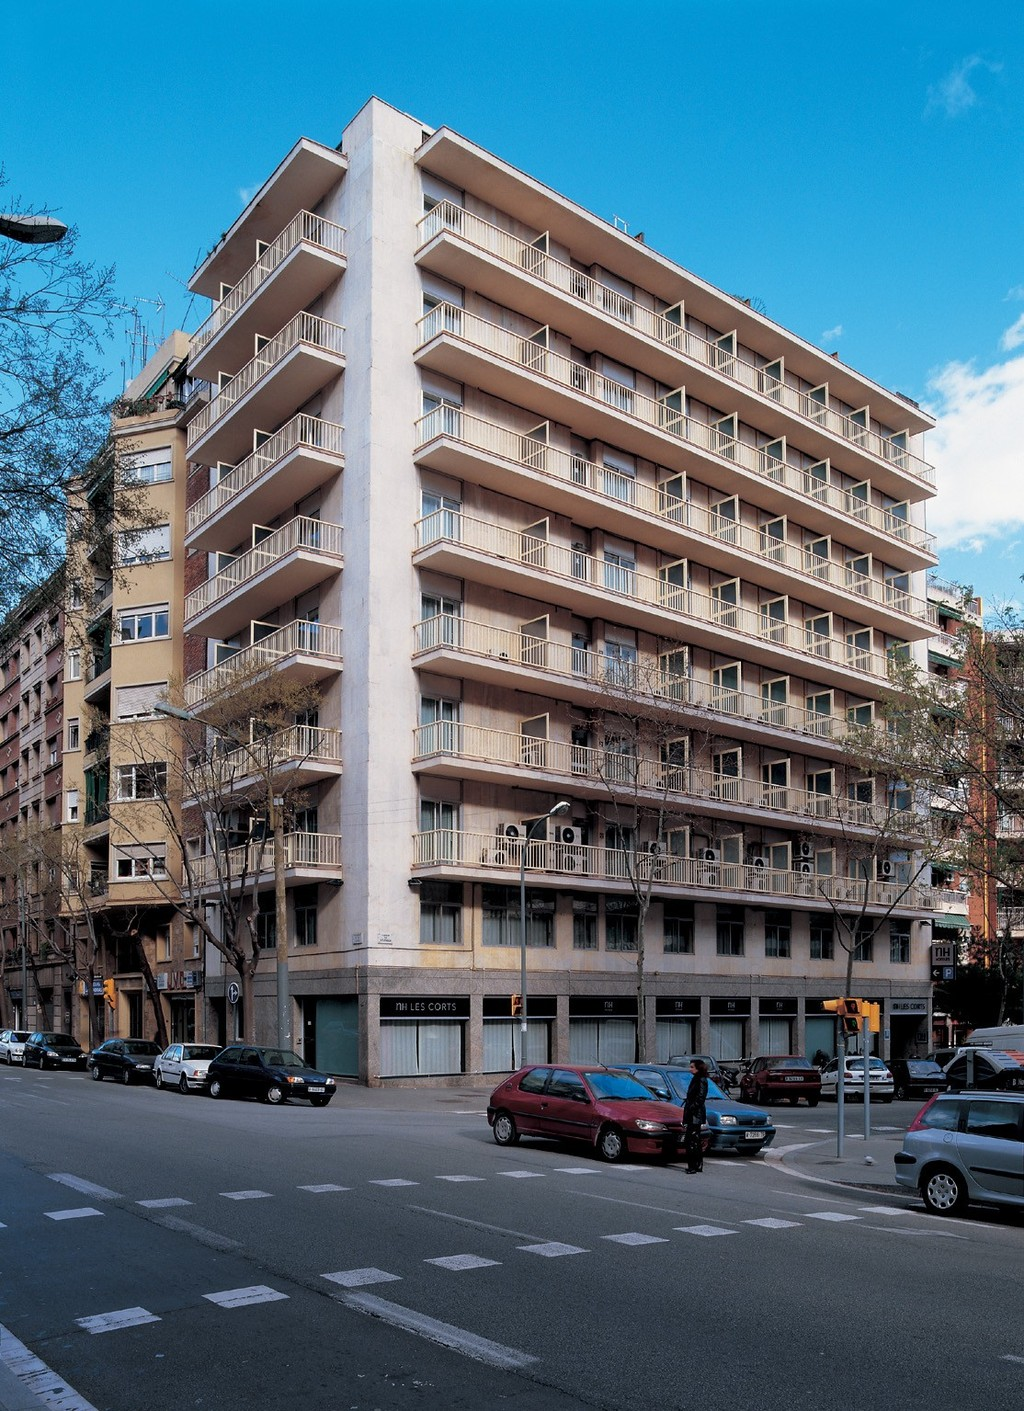 Hotel nh les corts barcelona spain for Hotel search